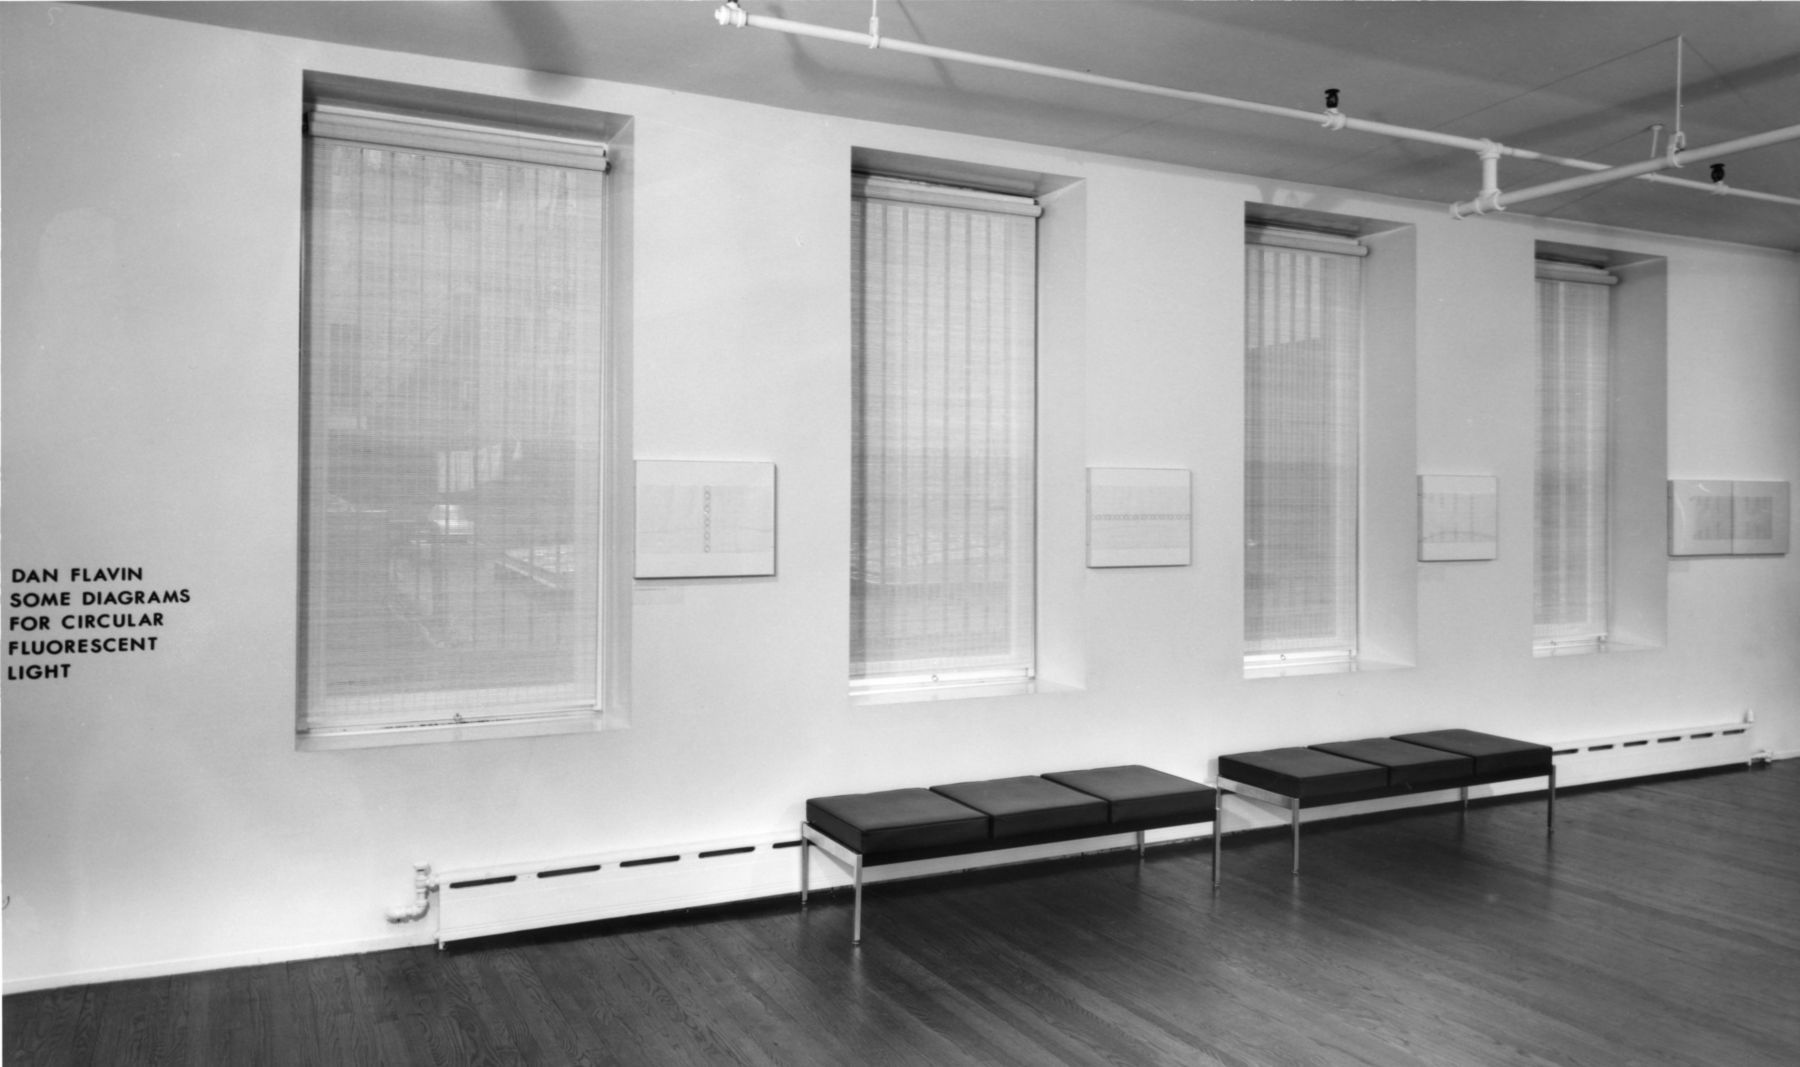 Installation view, Dan Flavin: Some Diagrams for Circular Fluorescent Light, 420 WEST BROADWAY